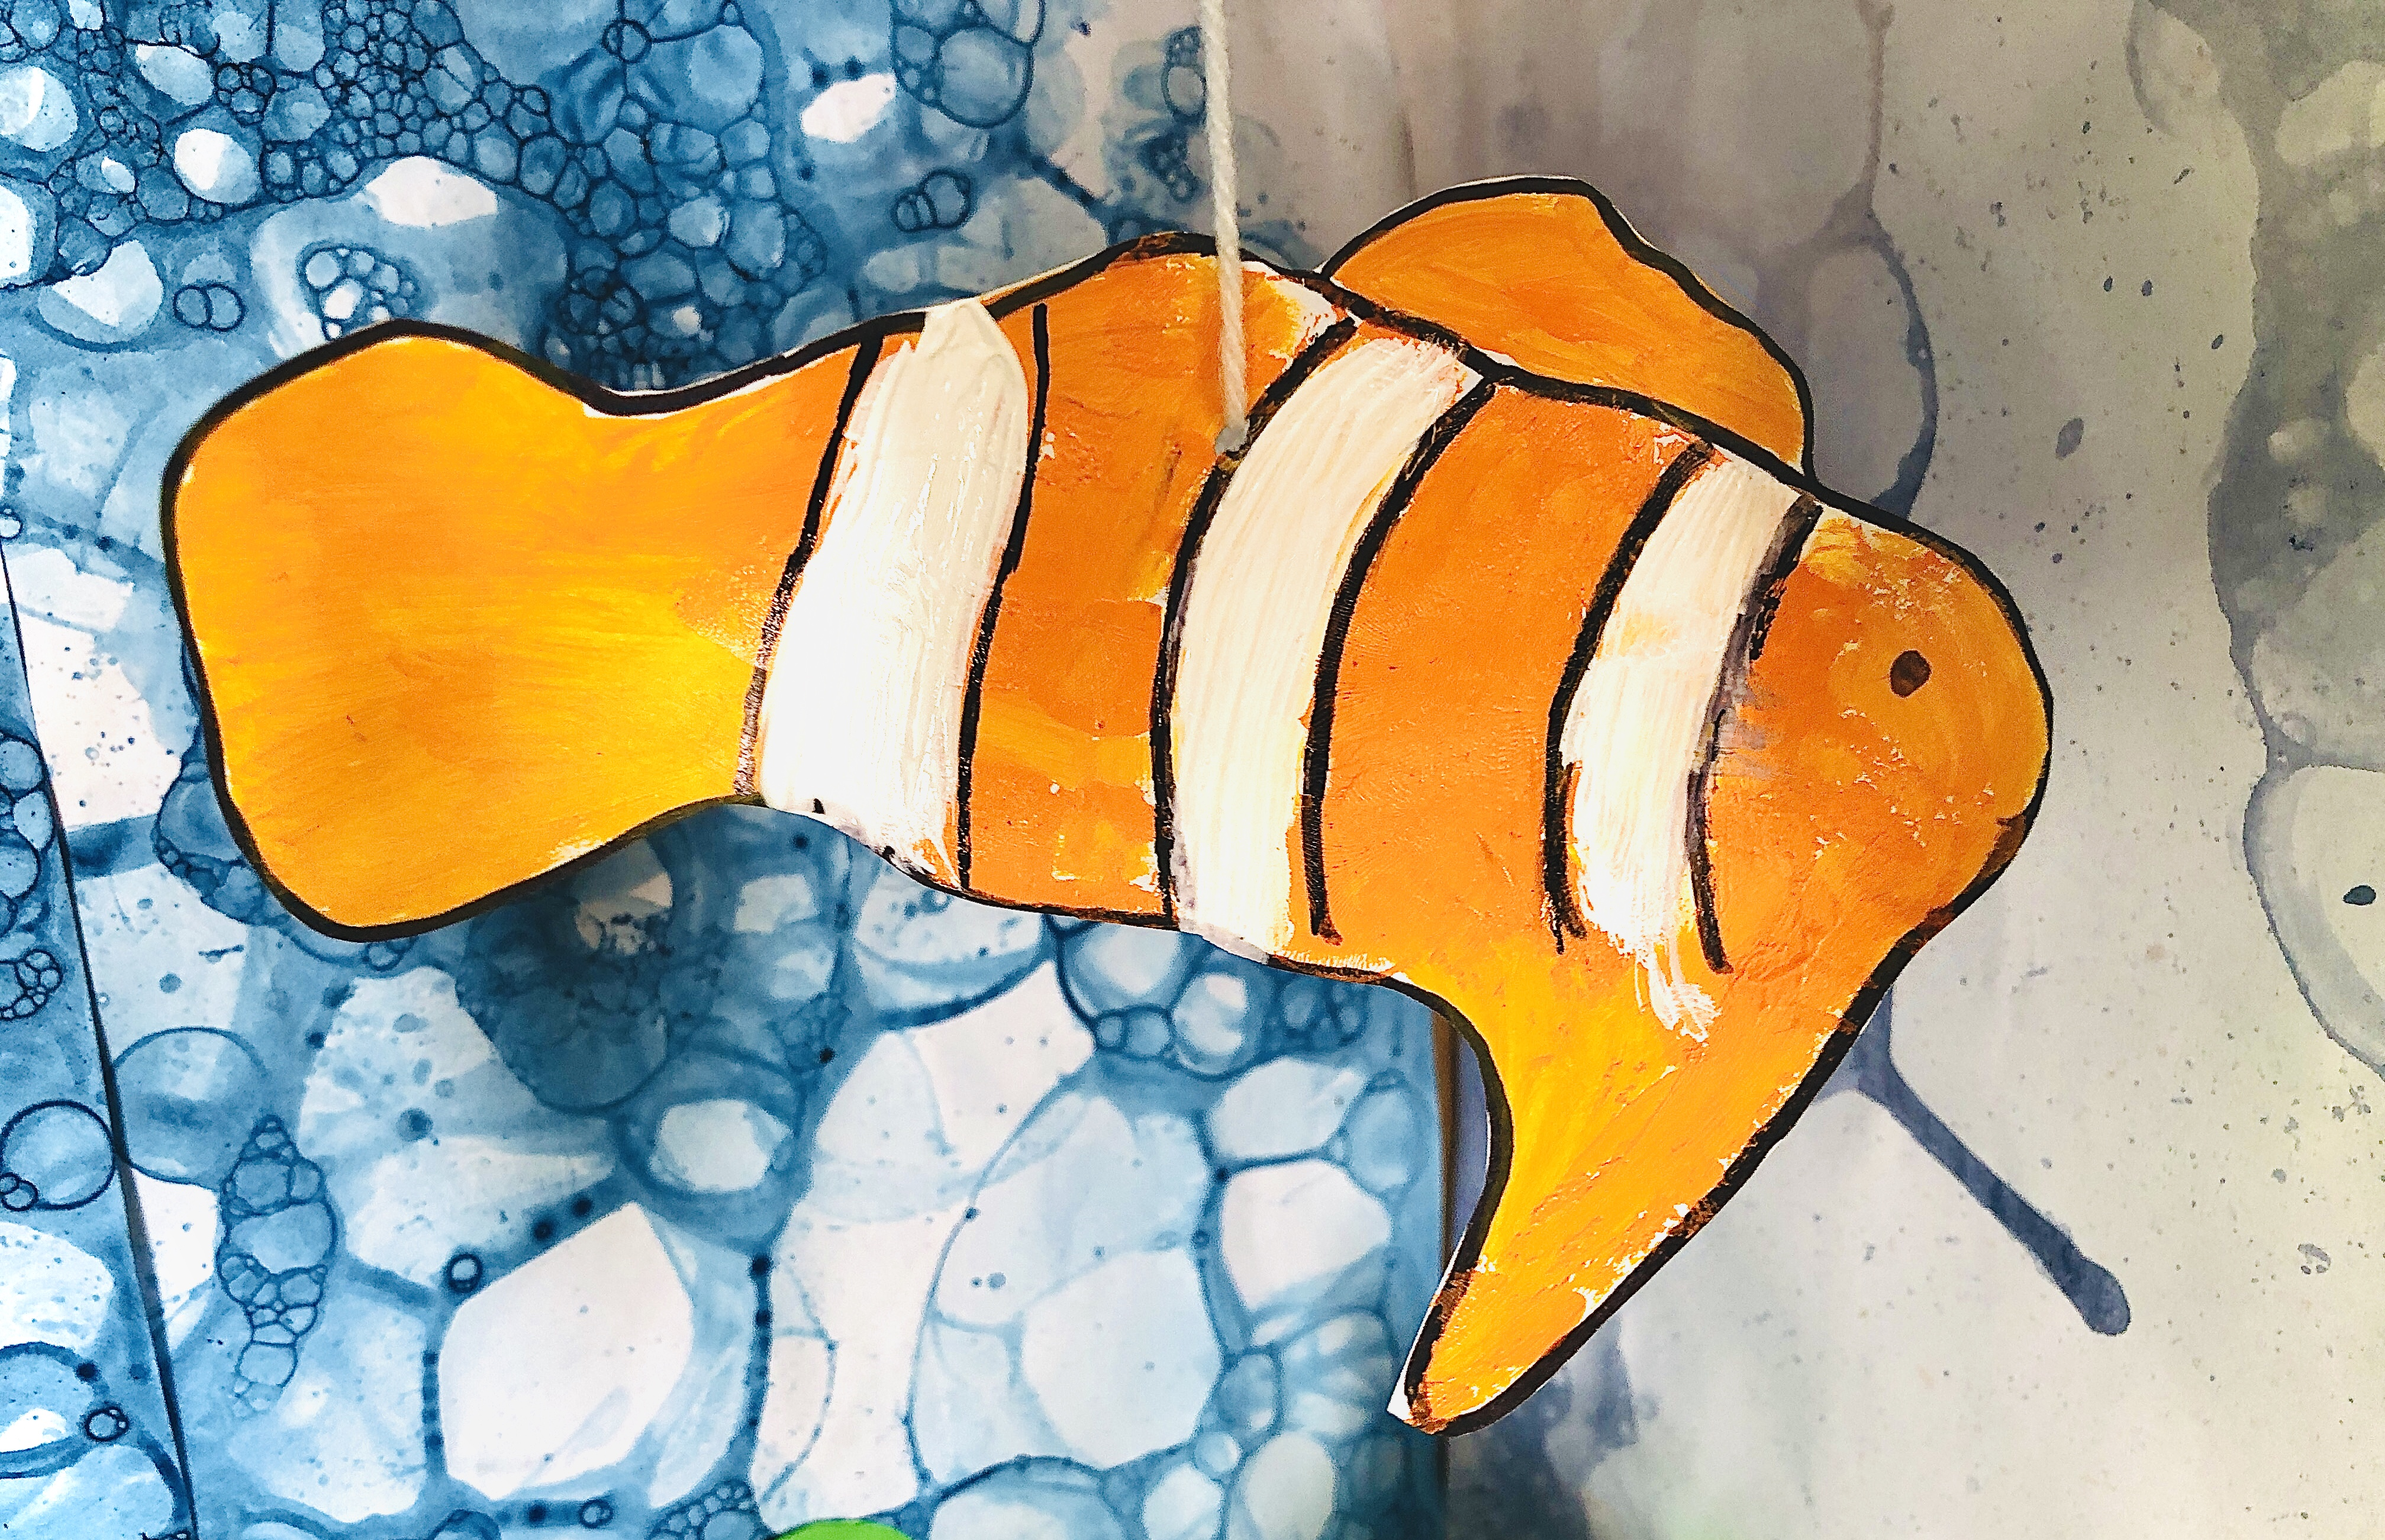 clownfish in the coral reef